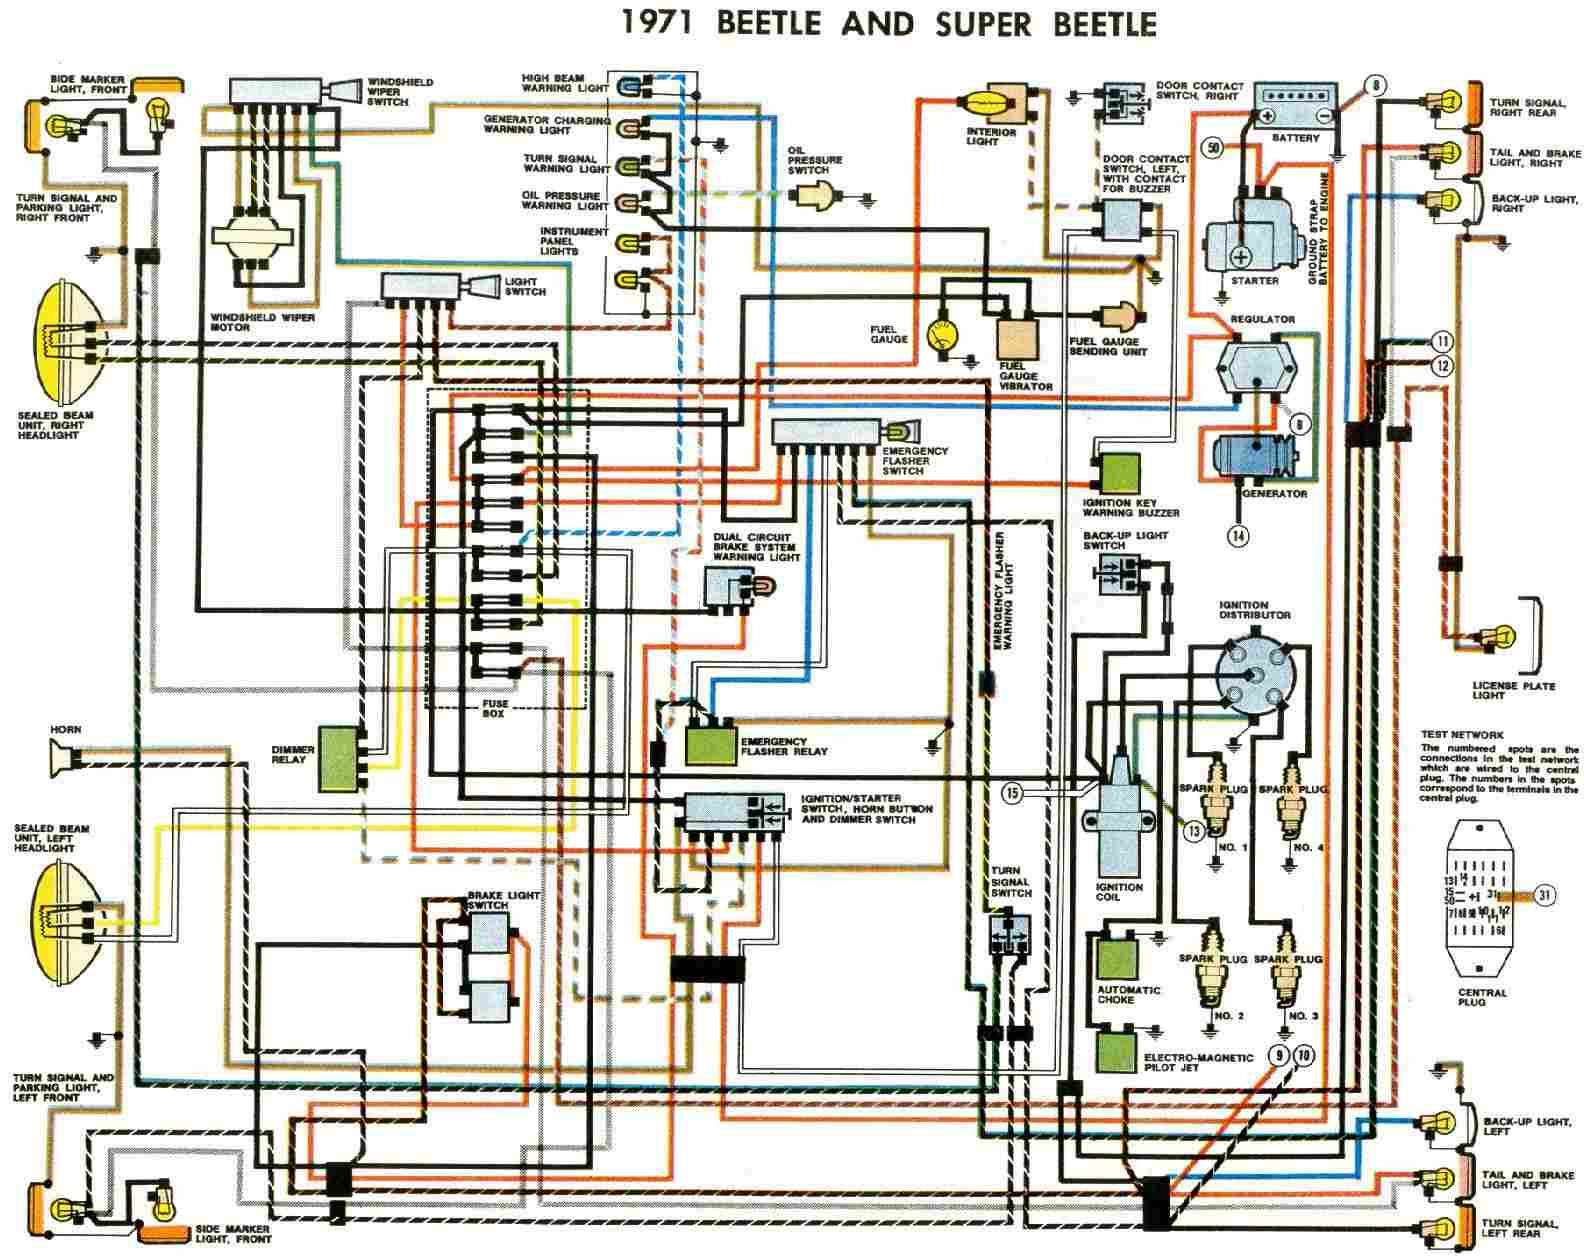 Free Bmw Wiring Diagram Control Wds System Download Auto 1971 Vw Beetle And Super E39